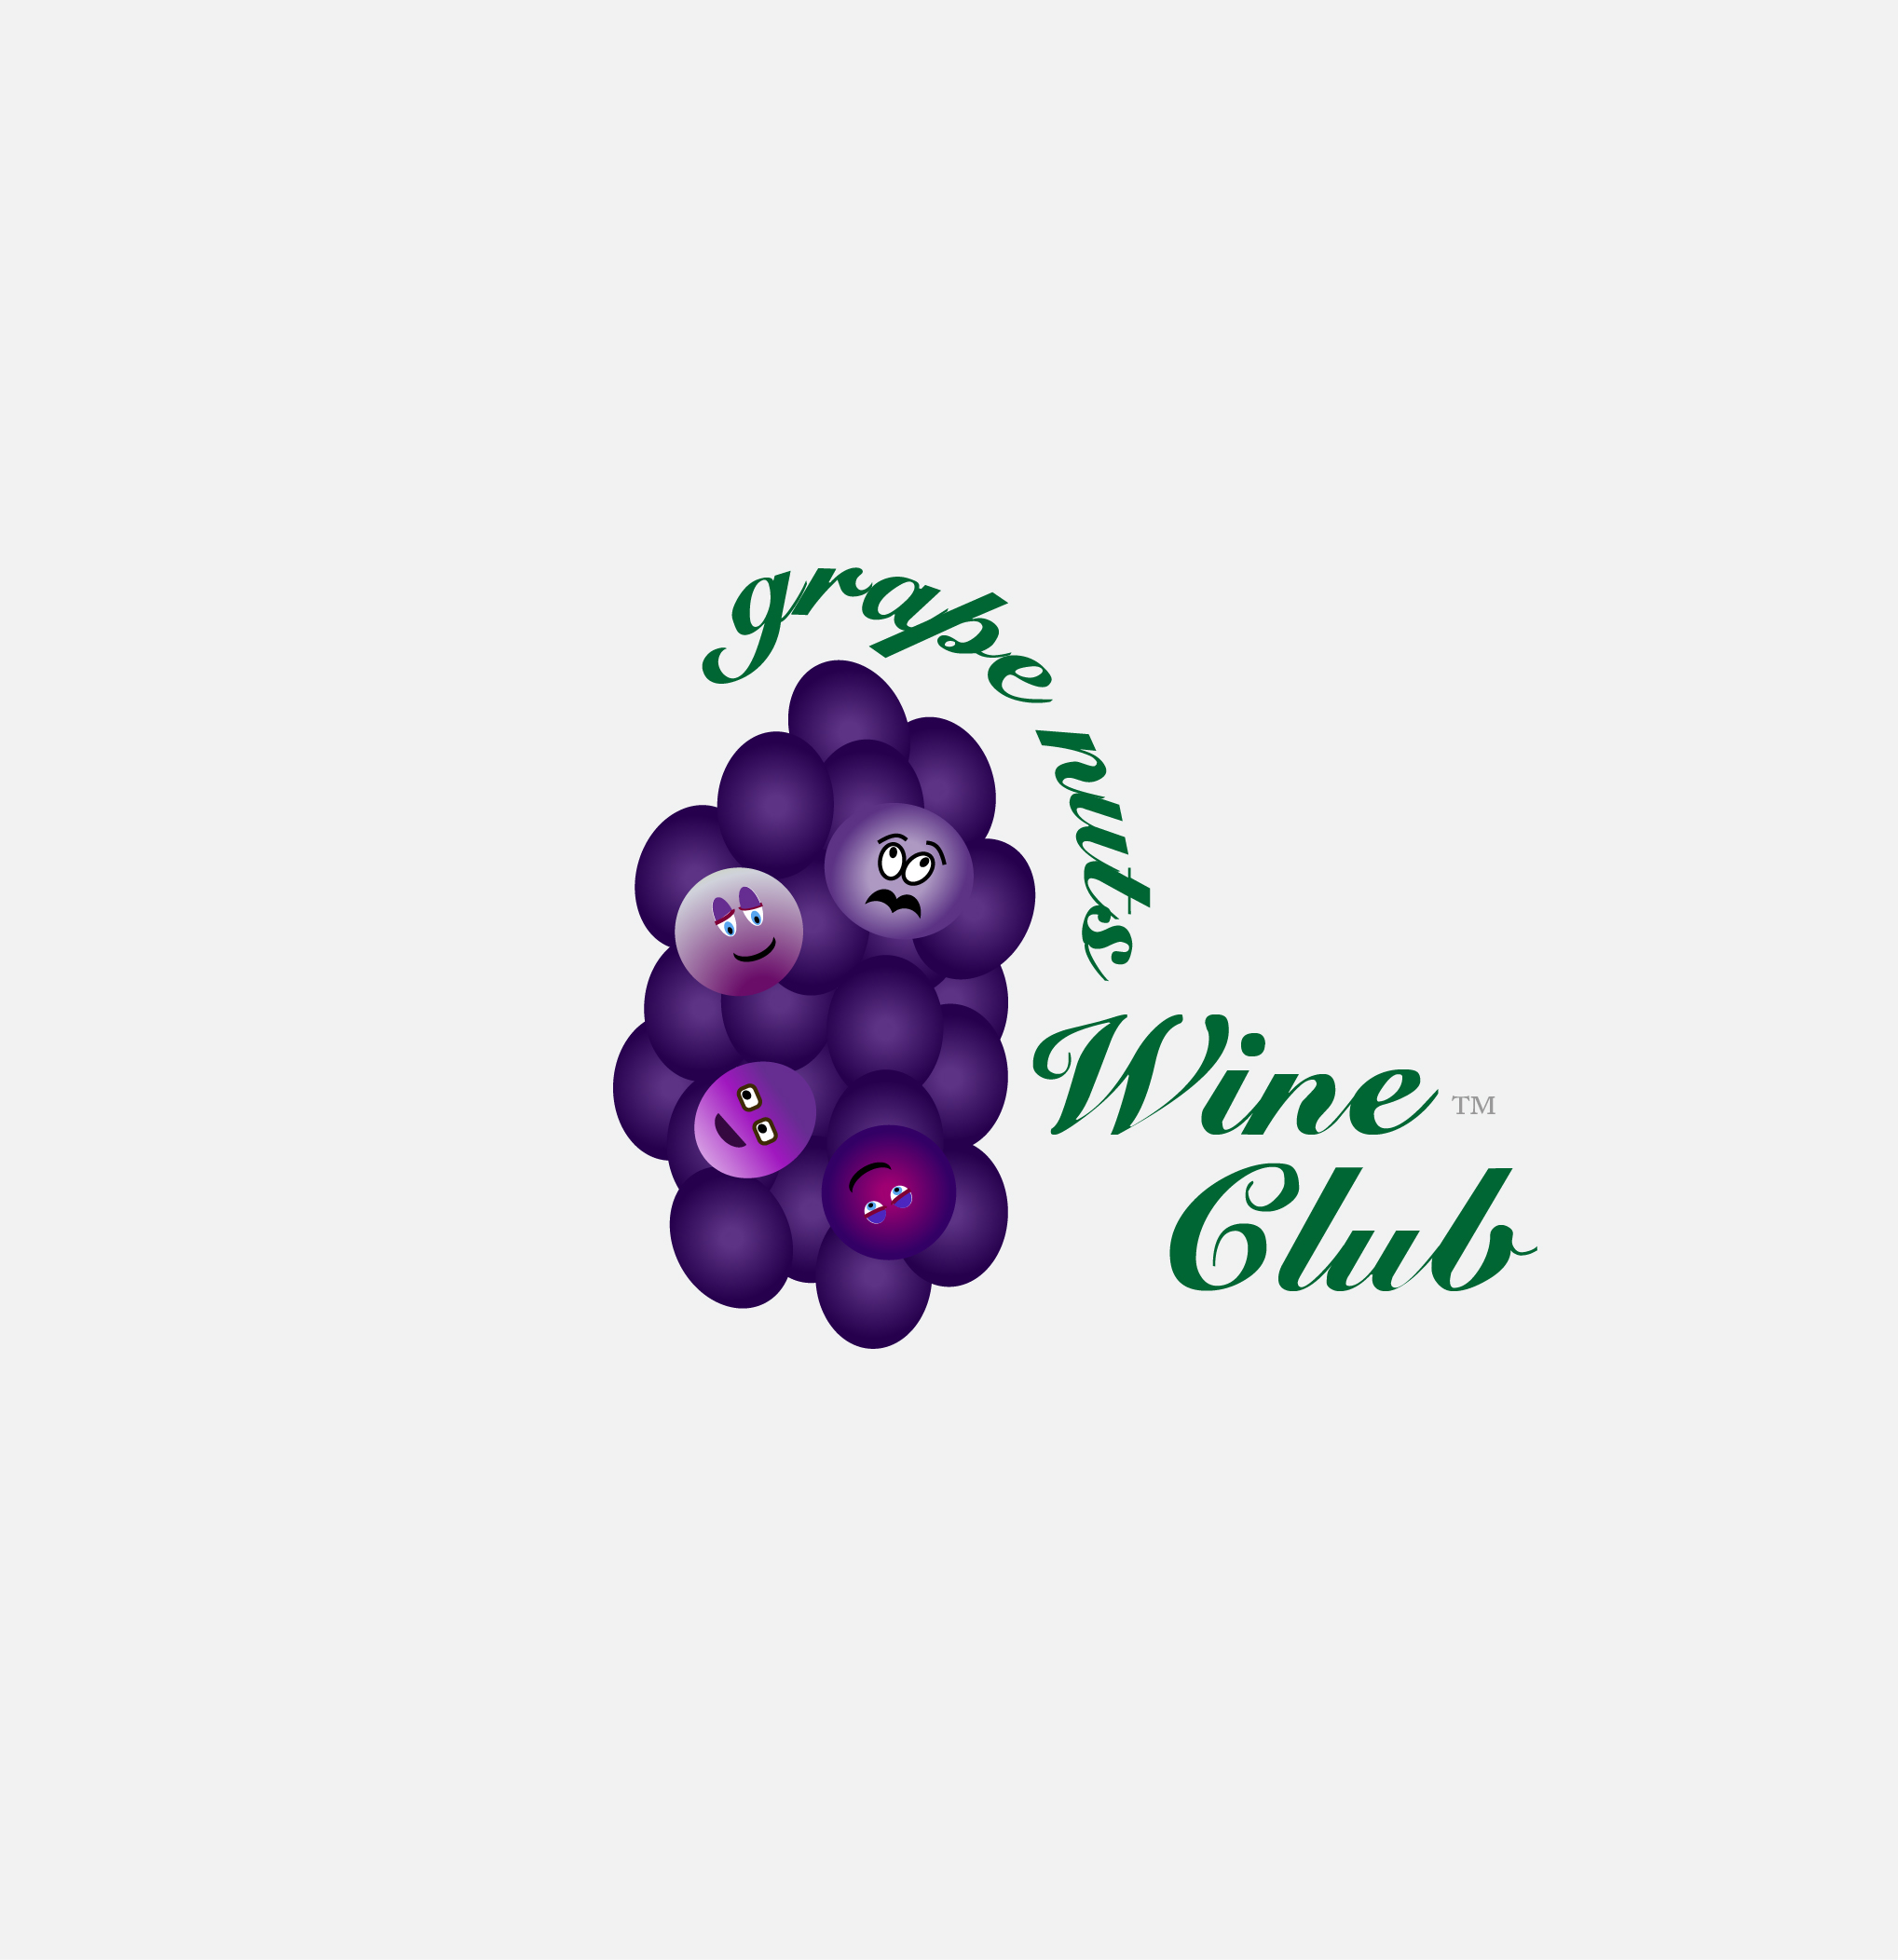 Logo Design by Nancy Grant - Entry No. 90 in the Logo Design Contest Artistic Logo Design for Grape Nuts Wine Club.